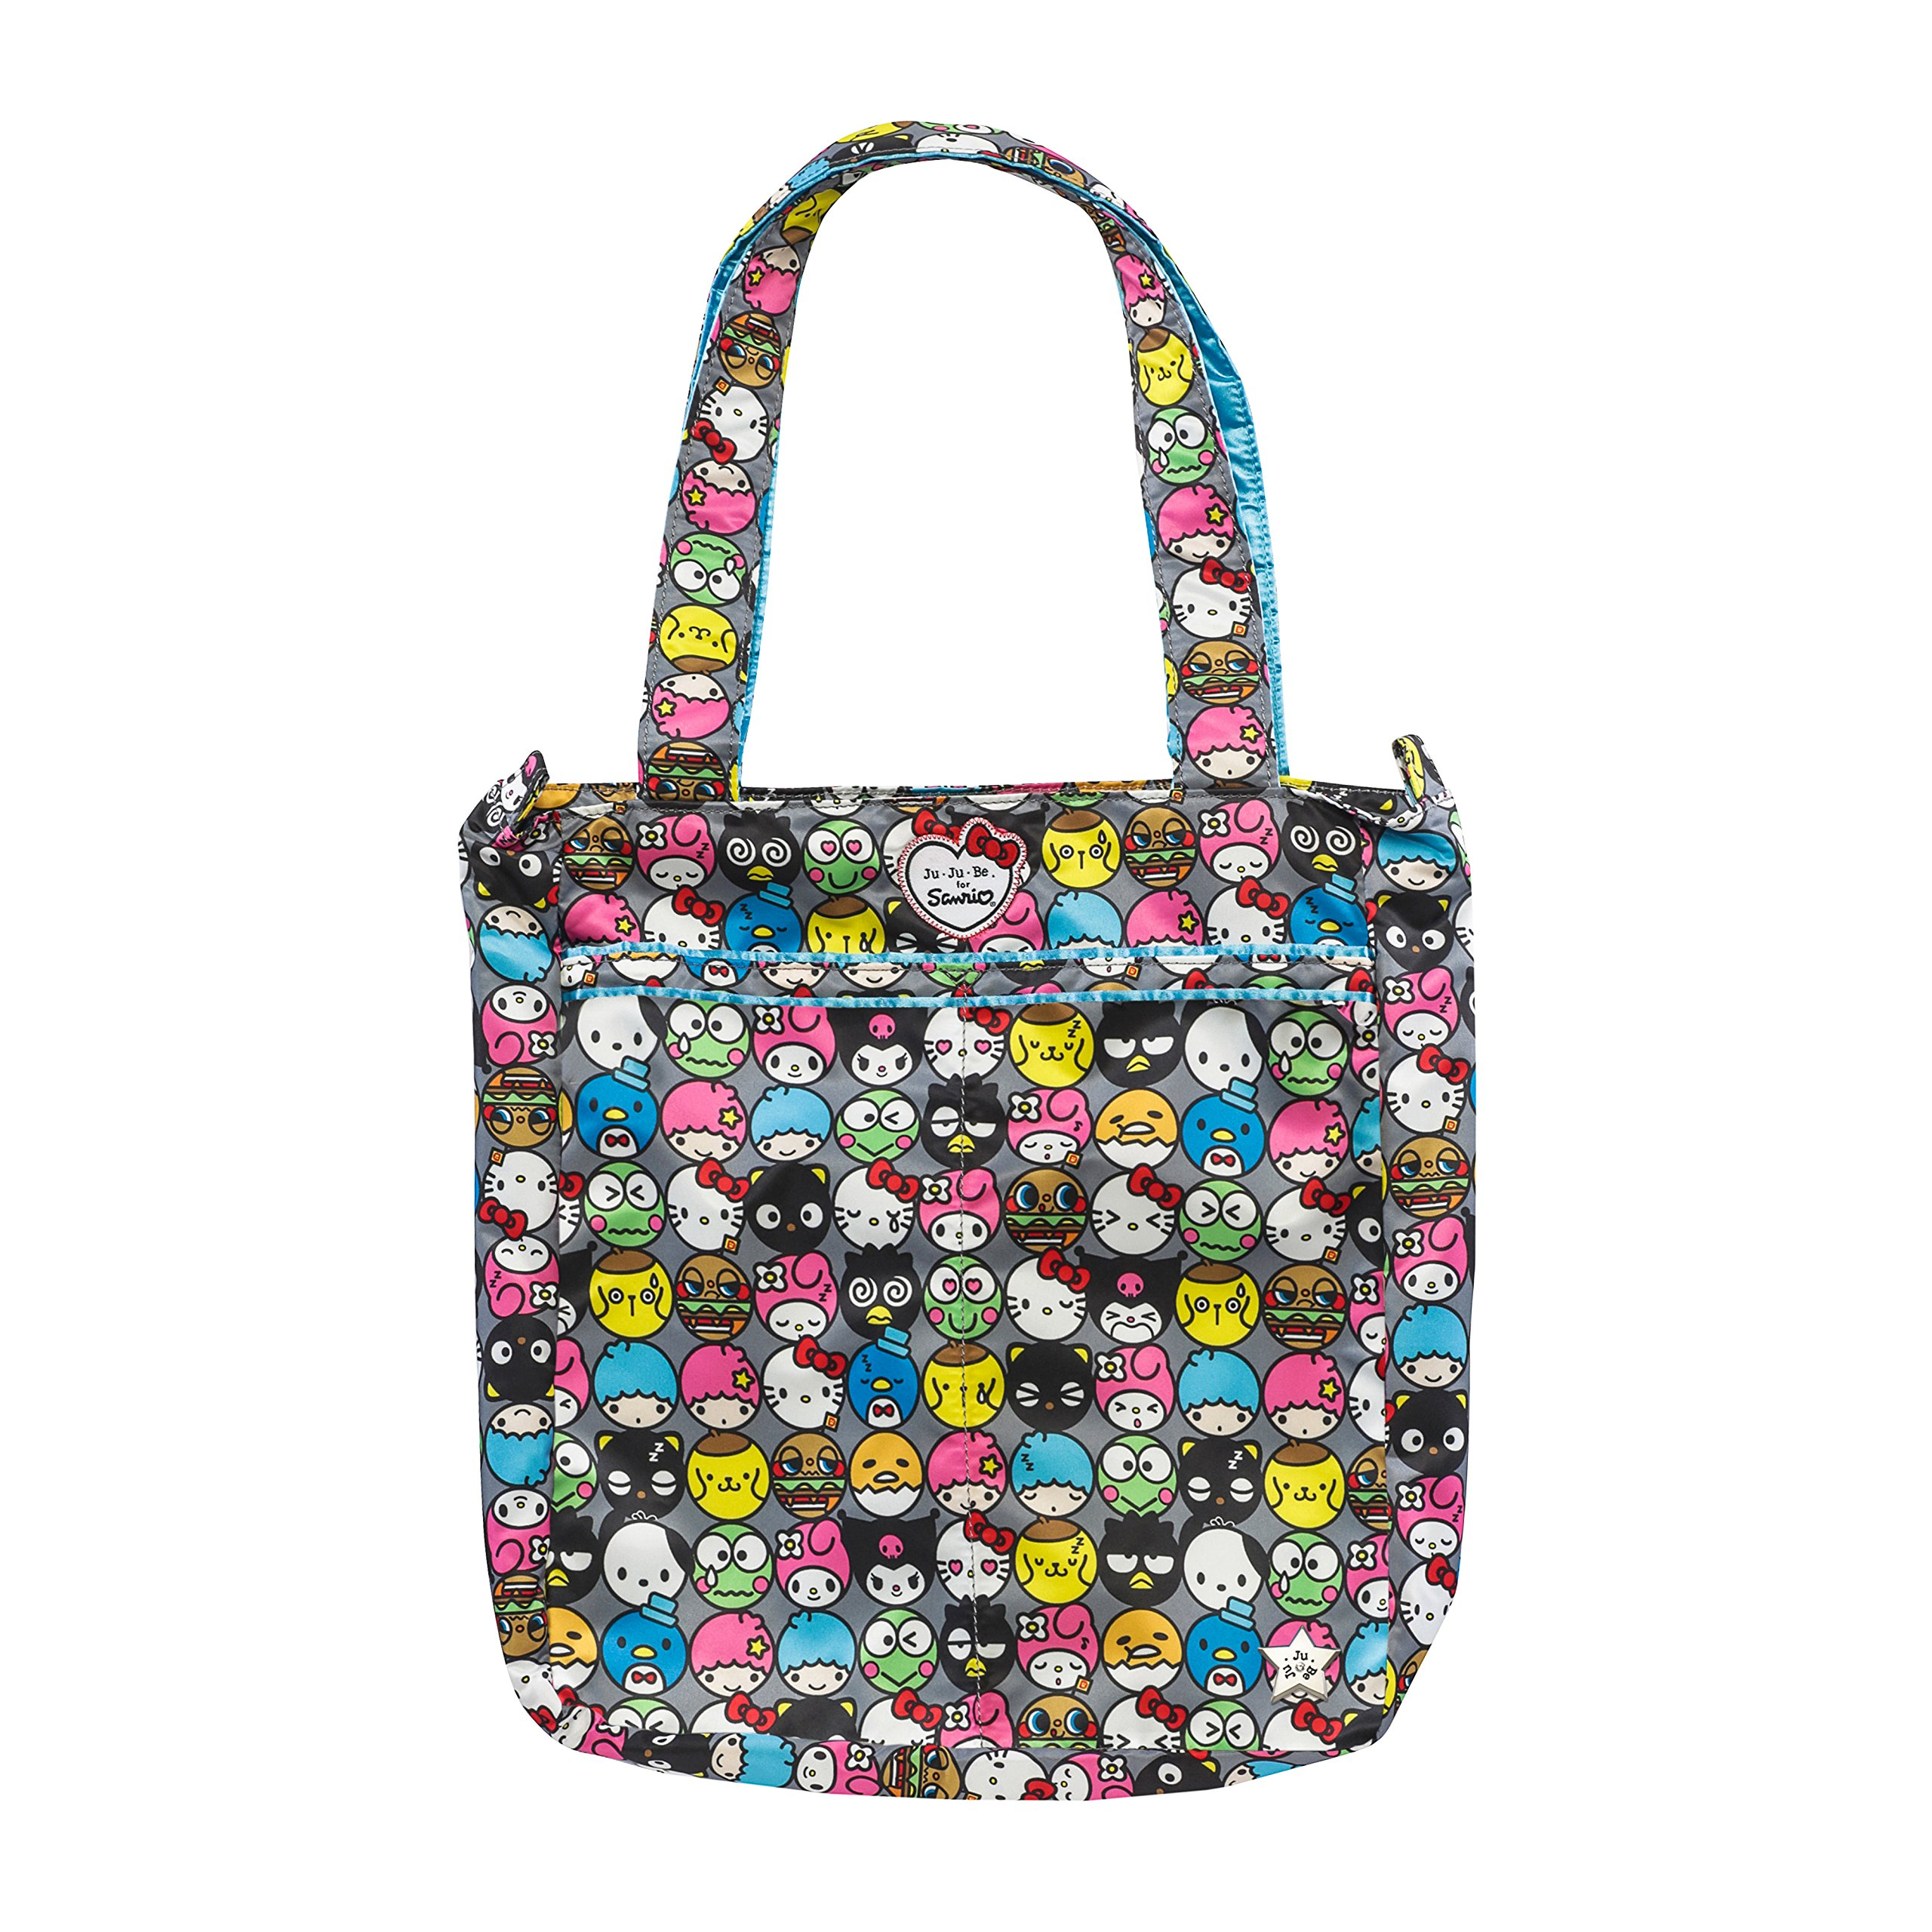 4661e92cbbd JuJuBe Be Light Everyday Lightweight Zippered Tote Bag, Hello Kitty  Collection - Hello Friends